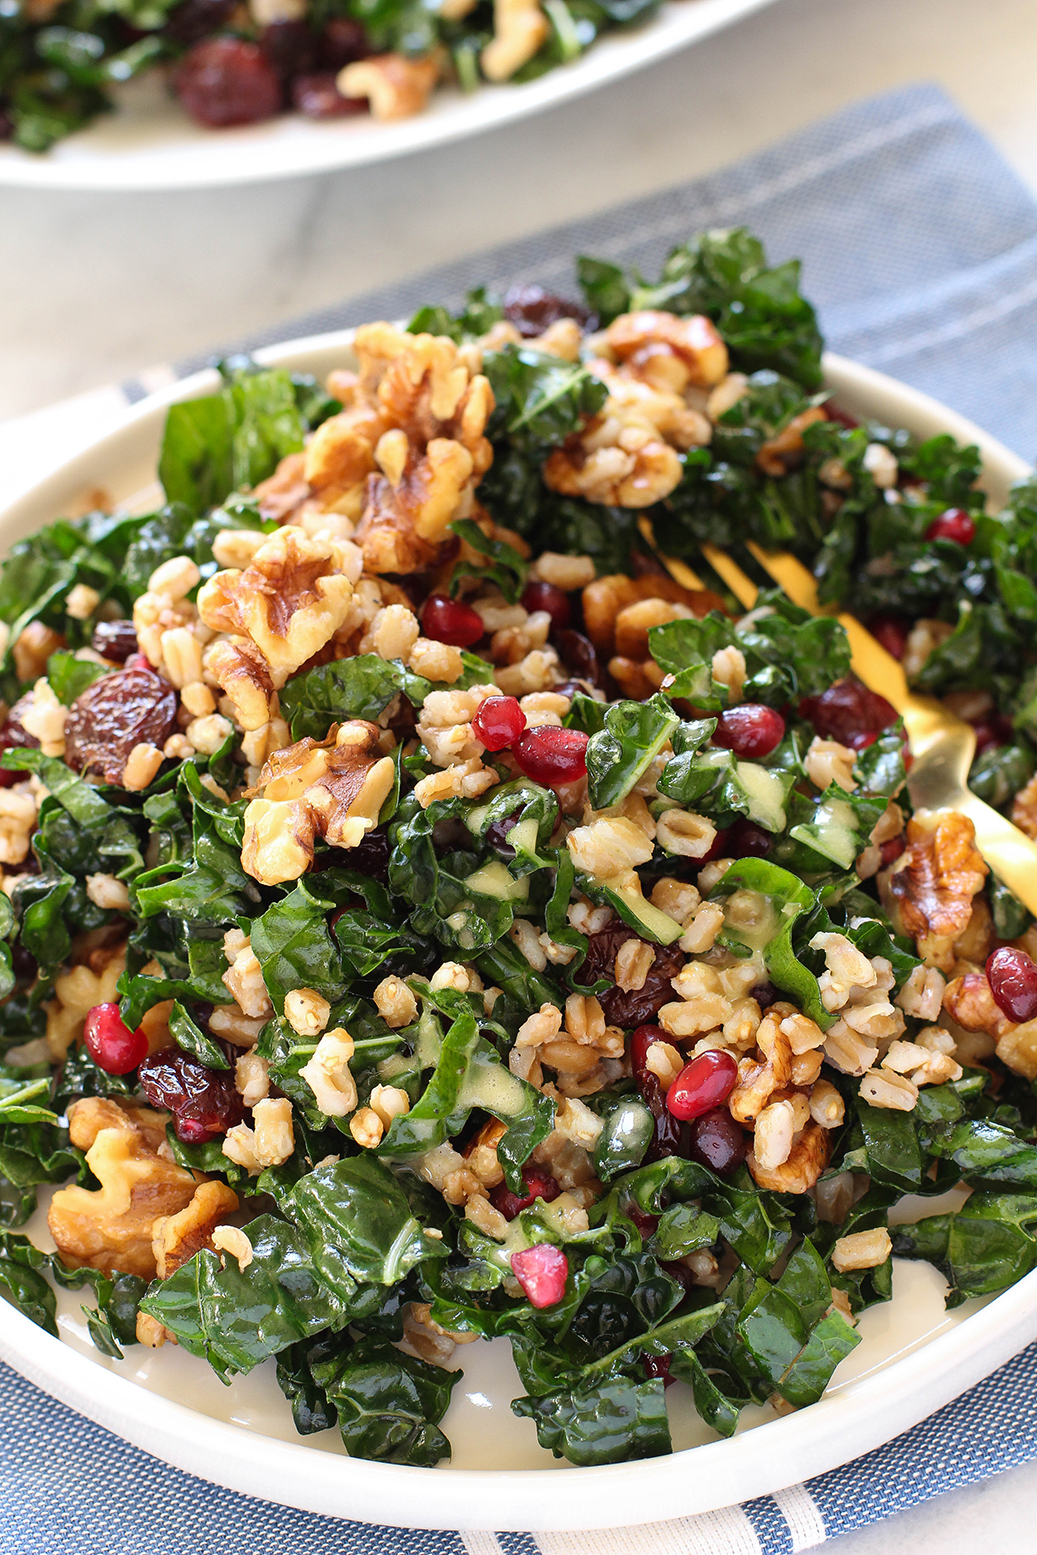 Fall Kale & Farro Salad - with pomegranate, walnuts, cherries & lemon oregano vinaigrette